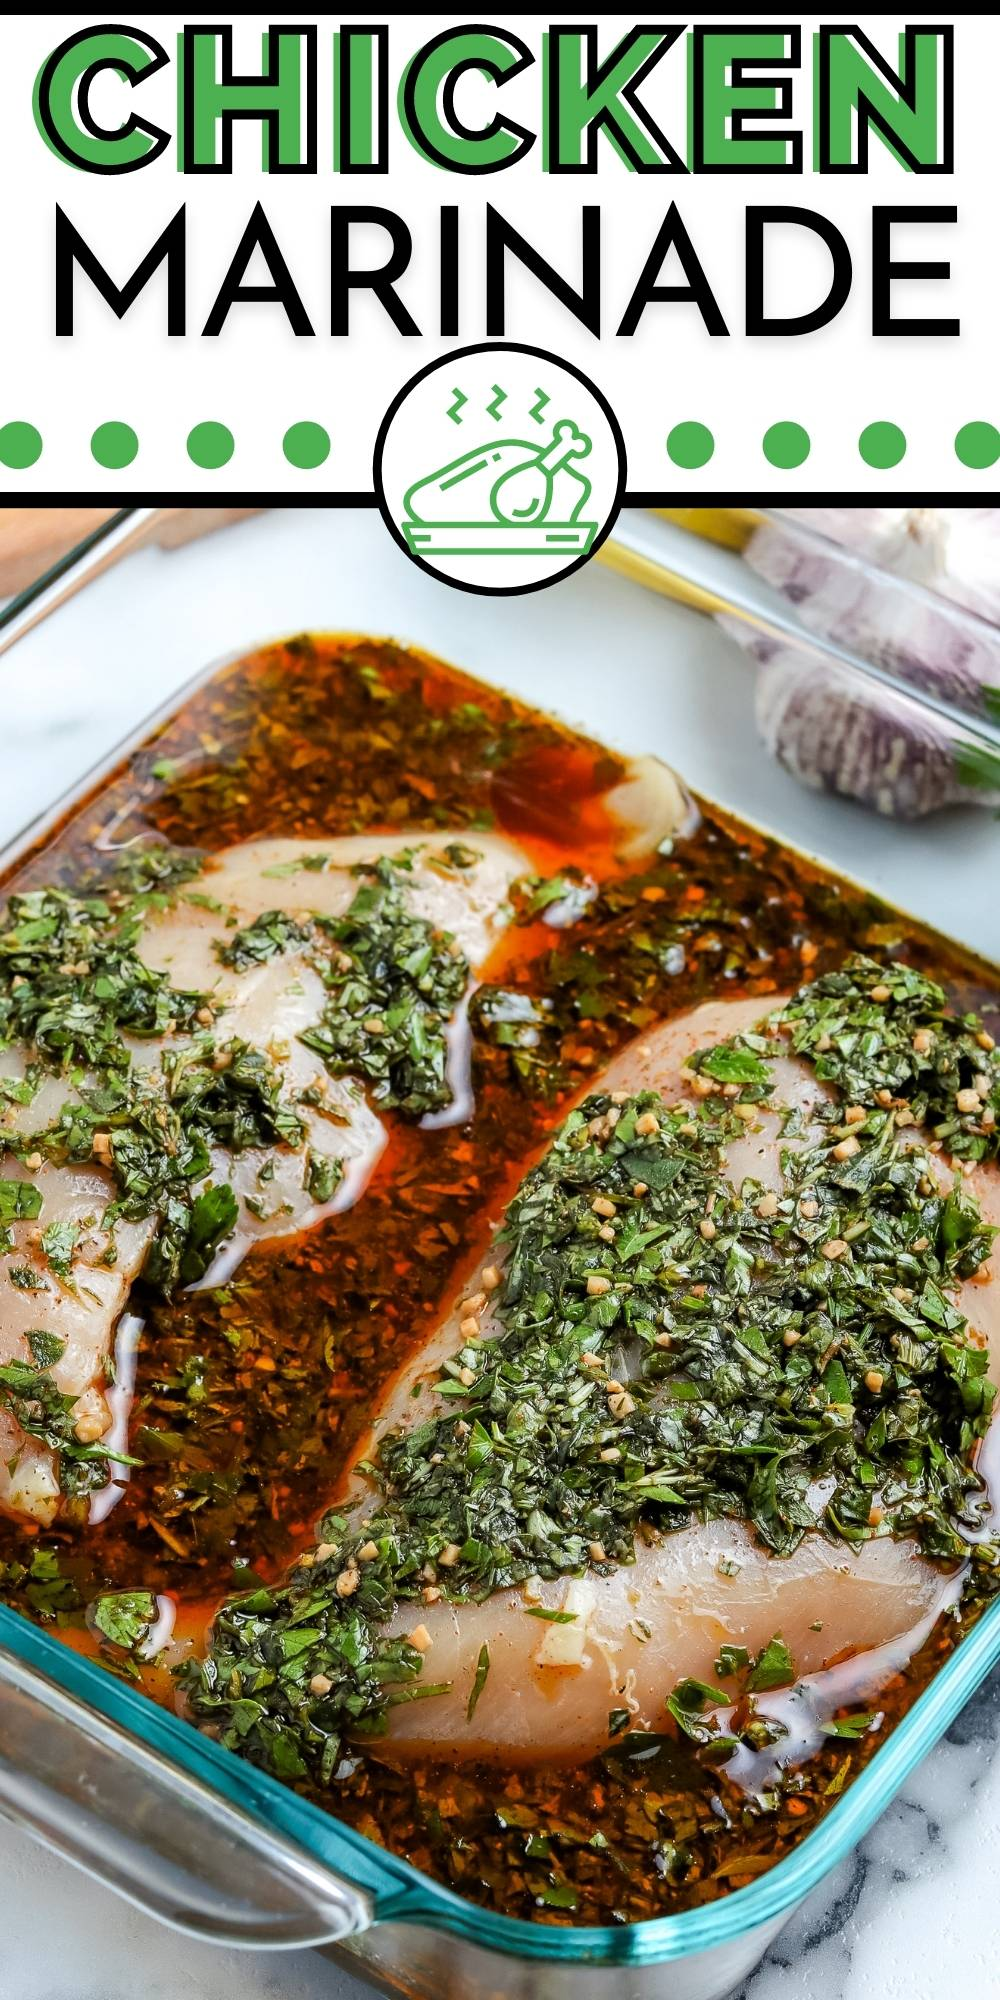 This Easy Chicken Marinade makes flavorful and juicy chicken every time. It's perfect for boneless skinless breasts, bone-in chicken breasts and pieces, chicken thighs, kabobs, and more. via @foodfolksandfun